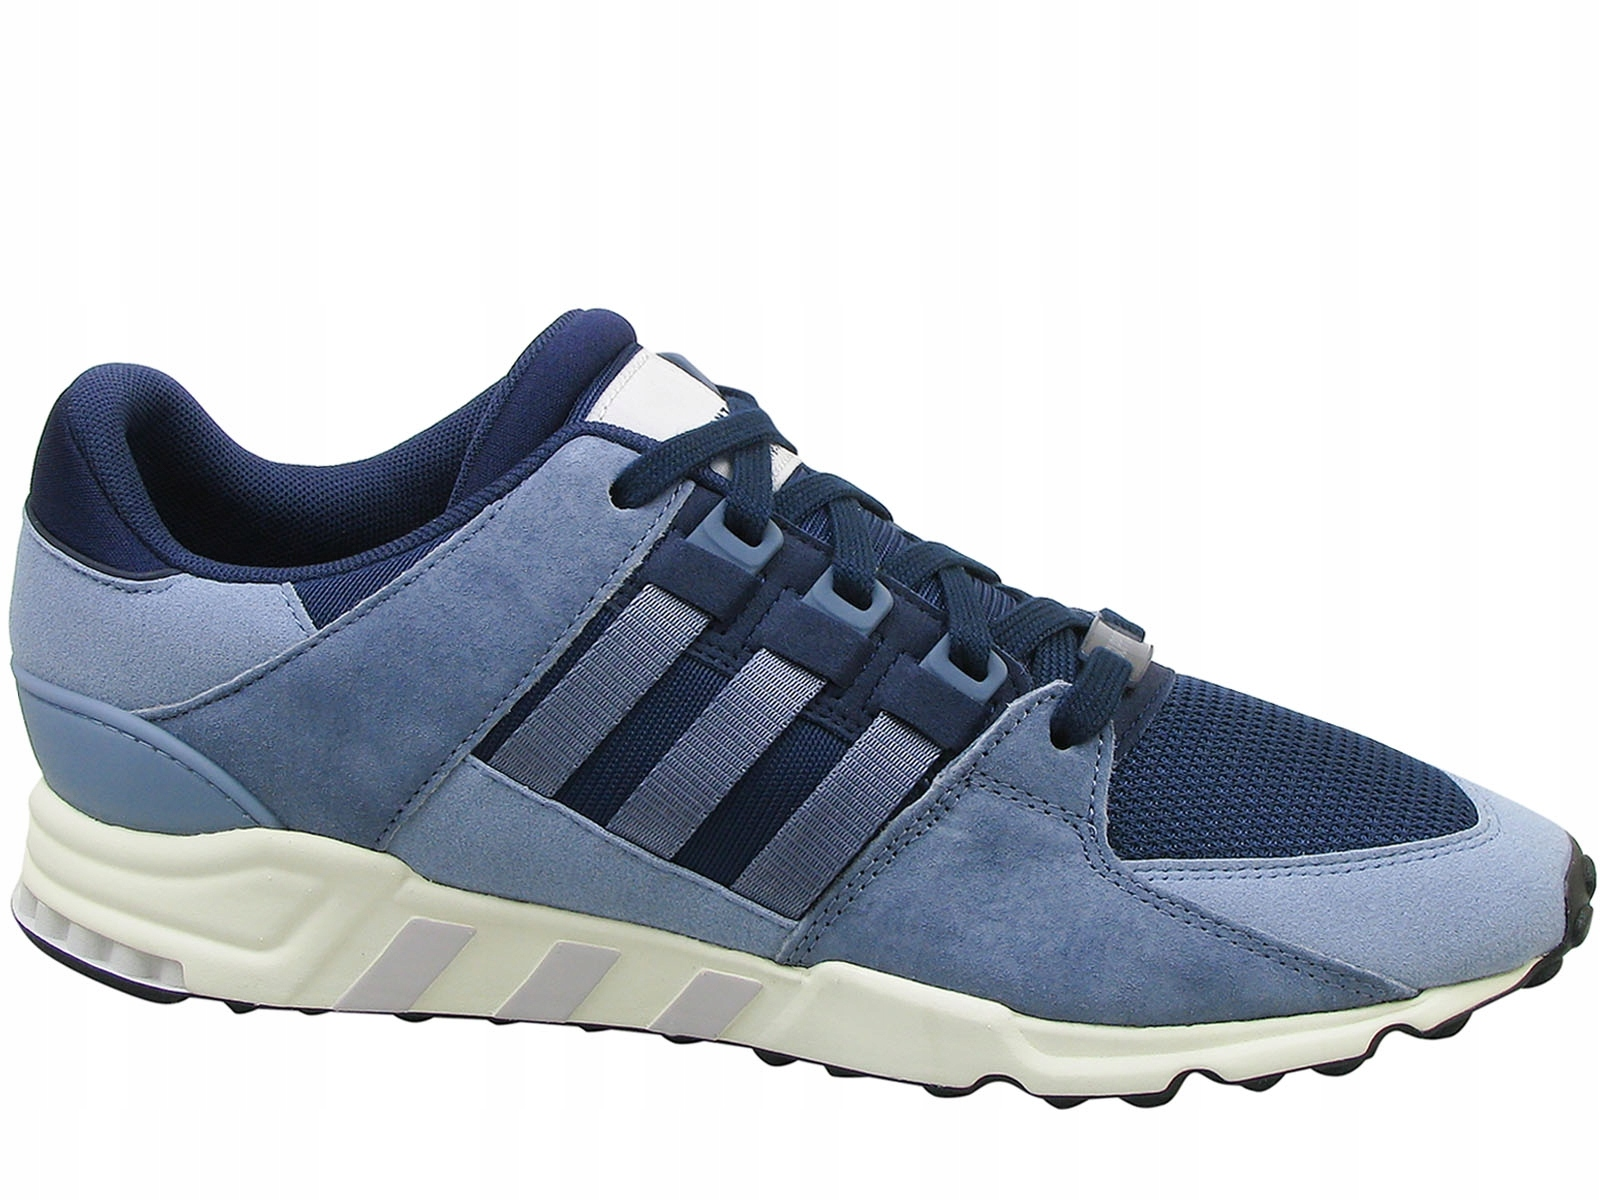 ADIDAS EQT EQUIPMENT SUPPORT RF CQ2419 BUTY MĘSKIE